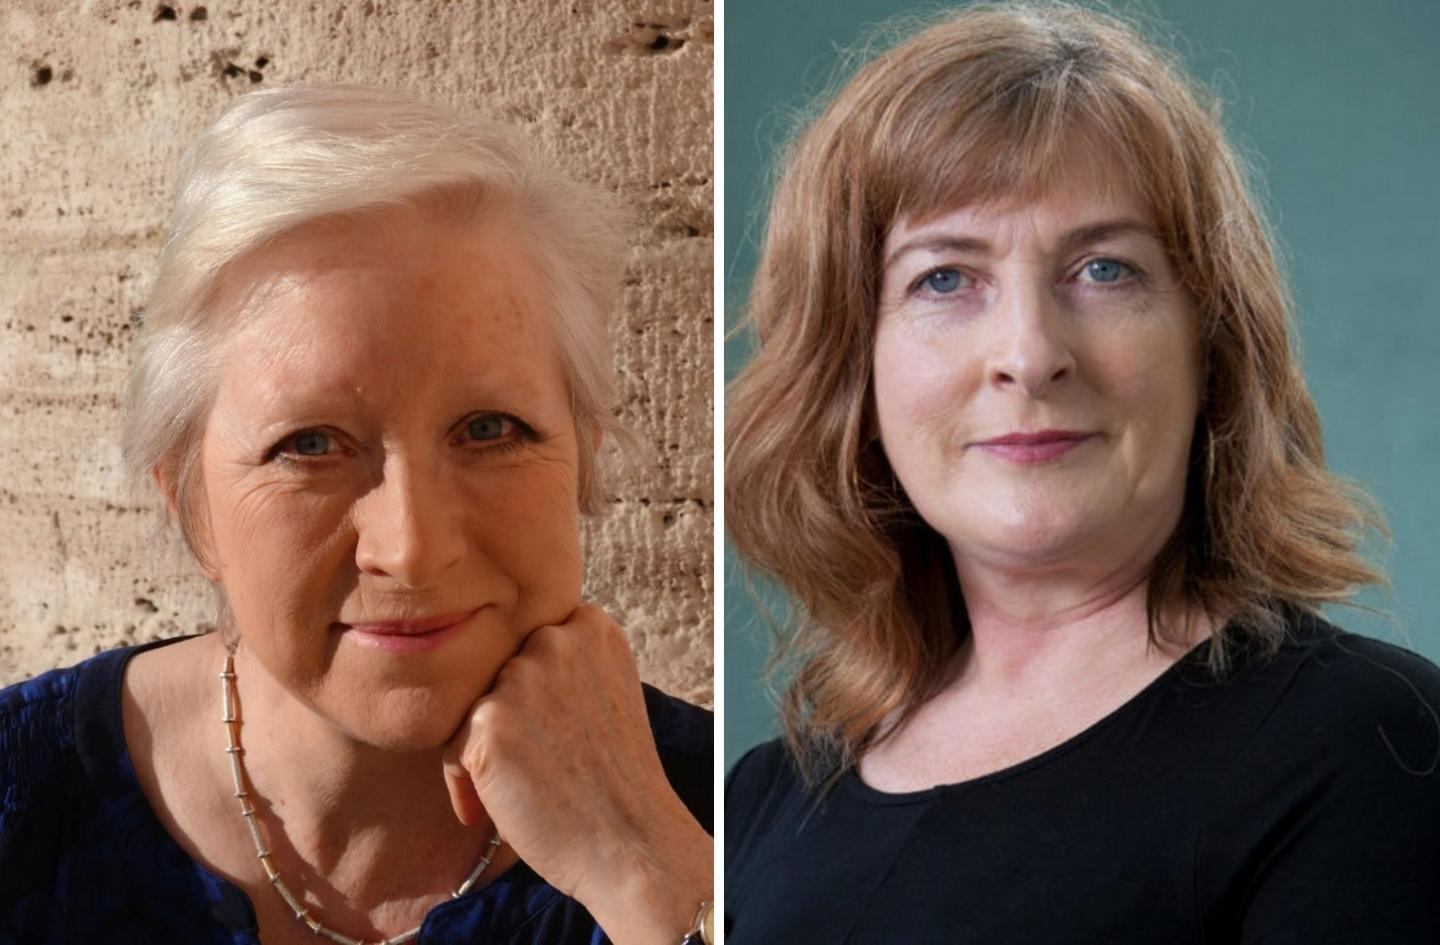 Susan Tomes and Janice Galloway